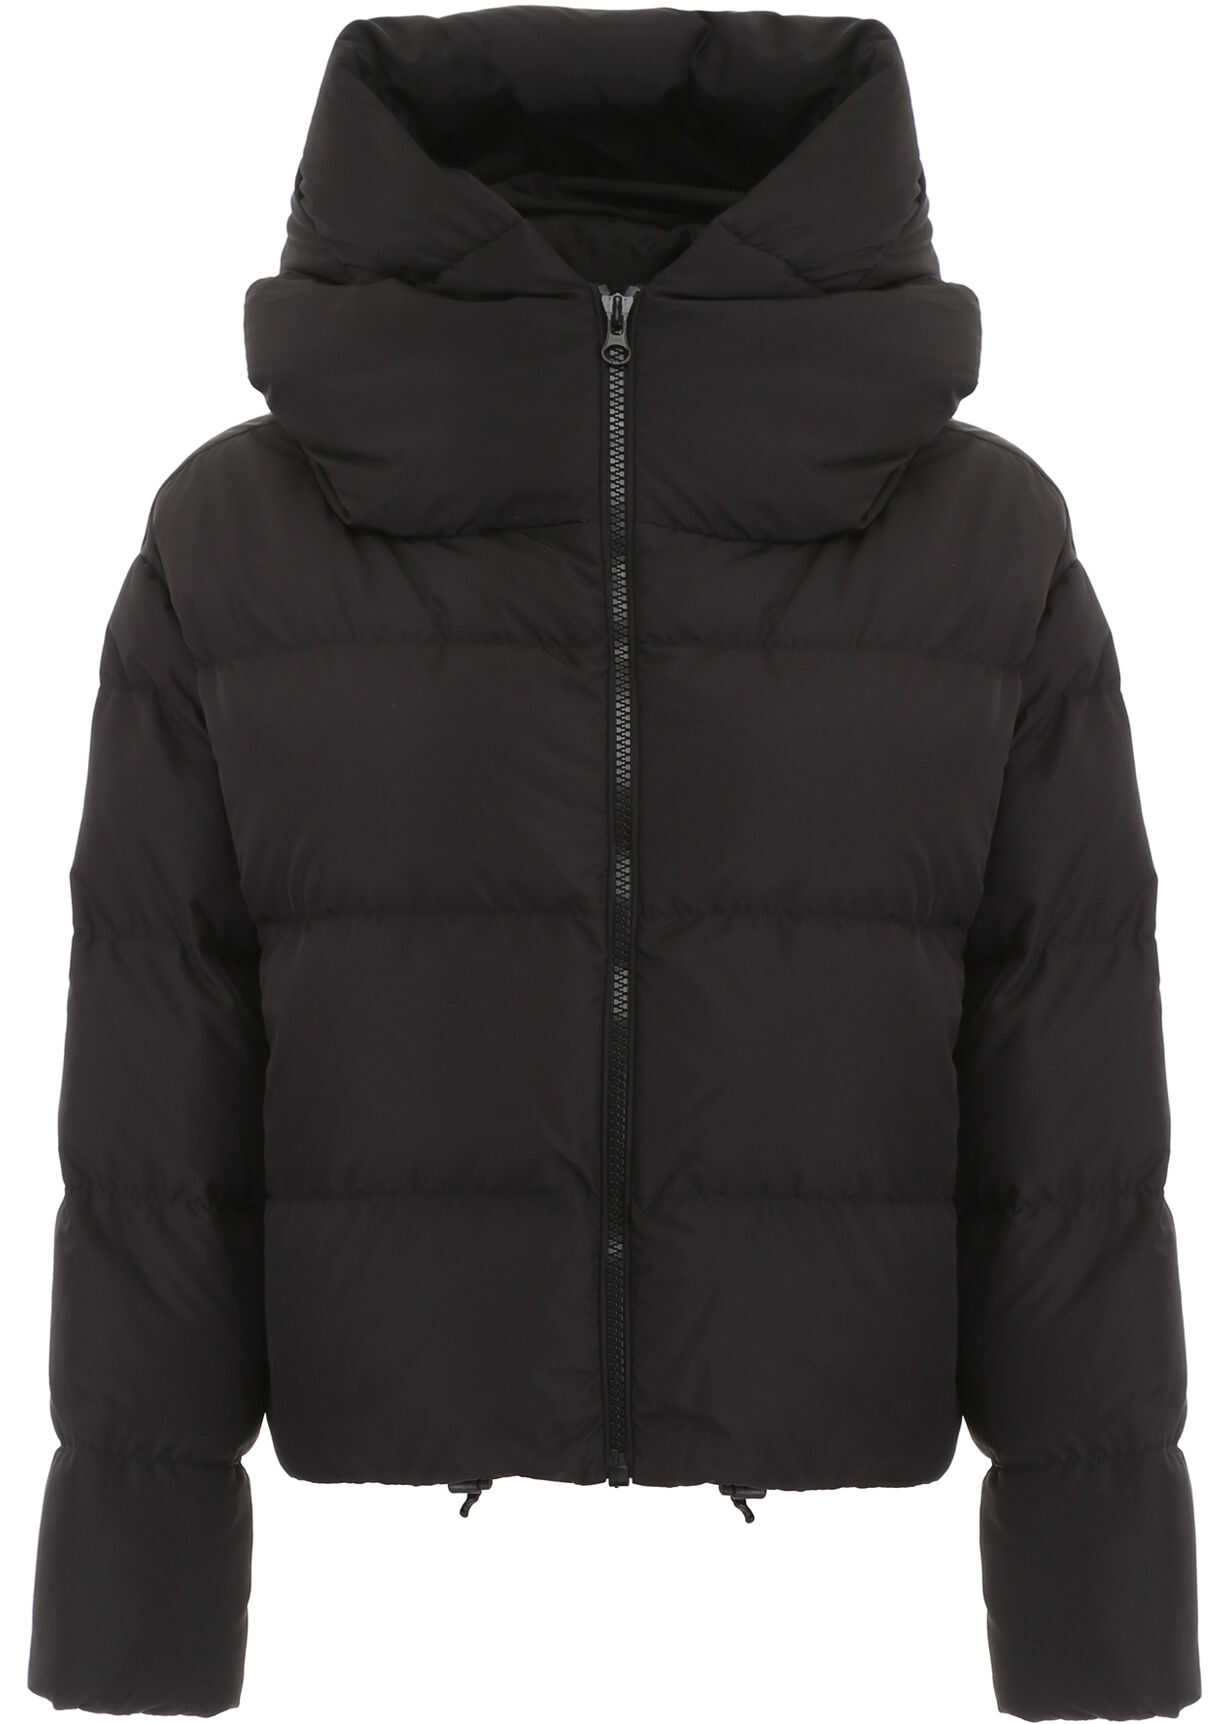 Bacon Cloud Jacket BLACK